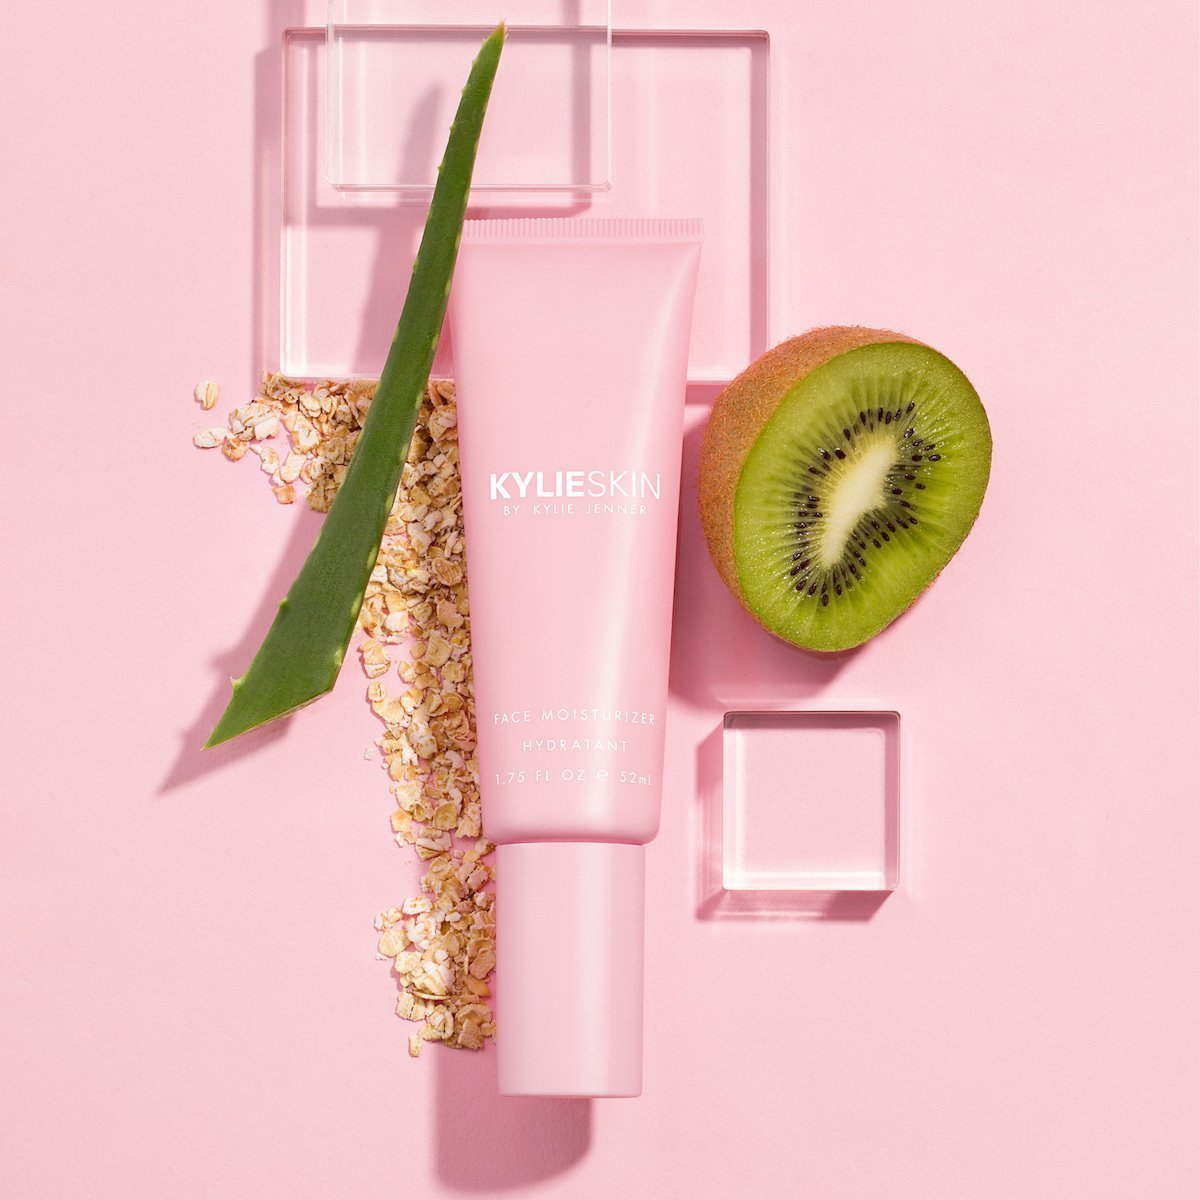 Kylie Skin Face Moisturizer with Kiwi ingredient